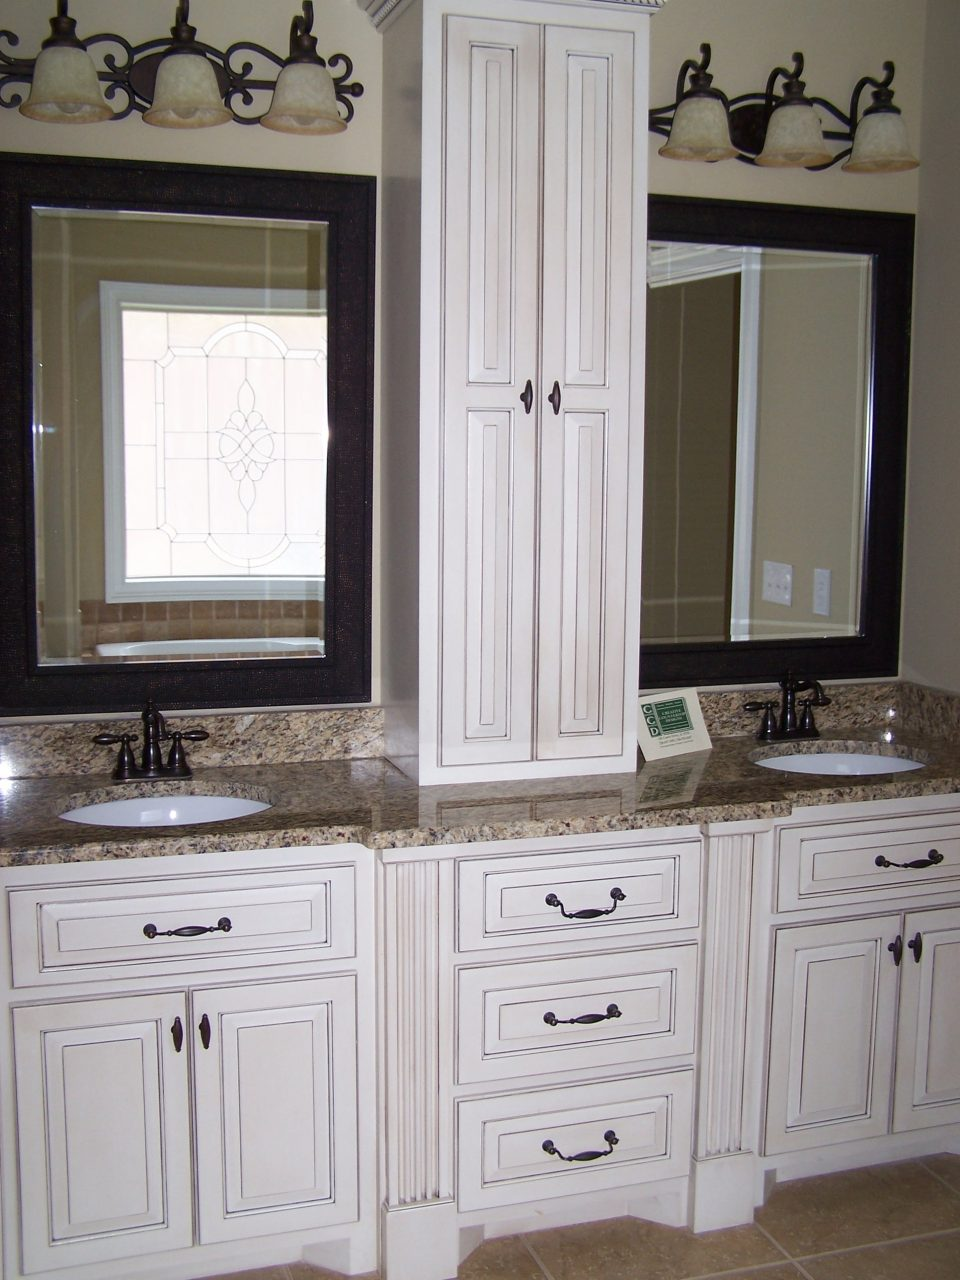 2018 Custom Bathroom Vanity 1 Photos Htsrec